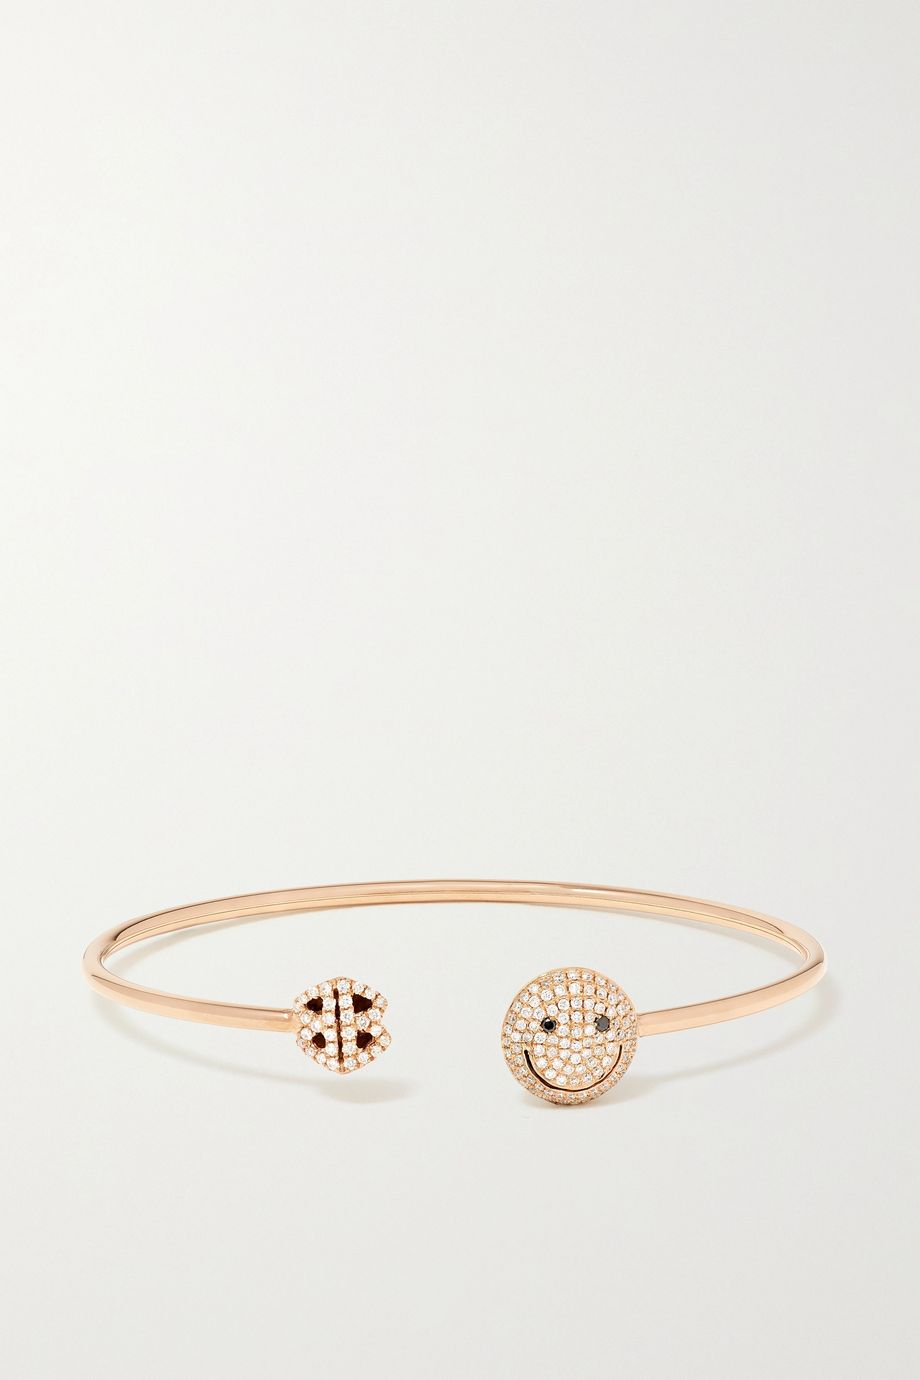 Lorraine Schwartz Happy 18-karat rose gold diamond cuff